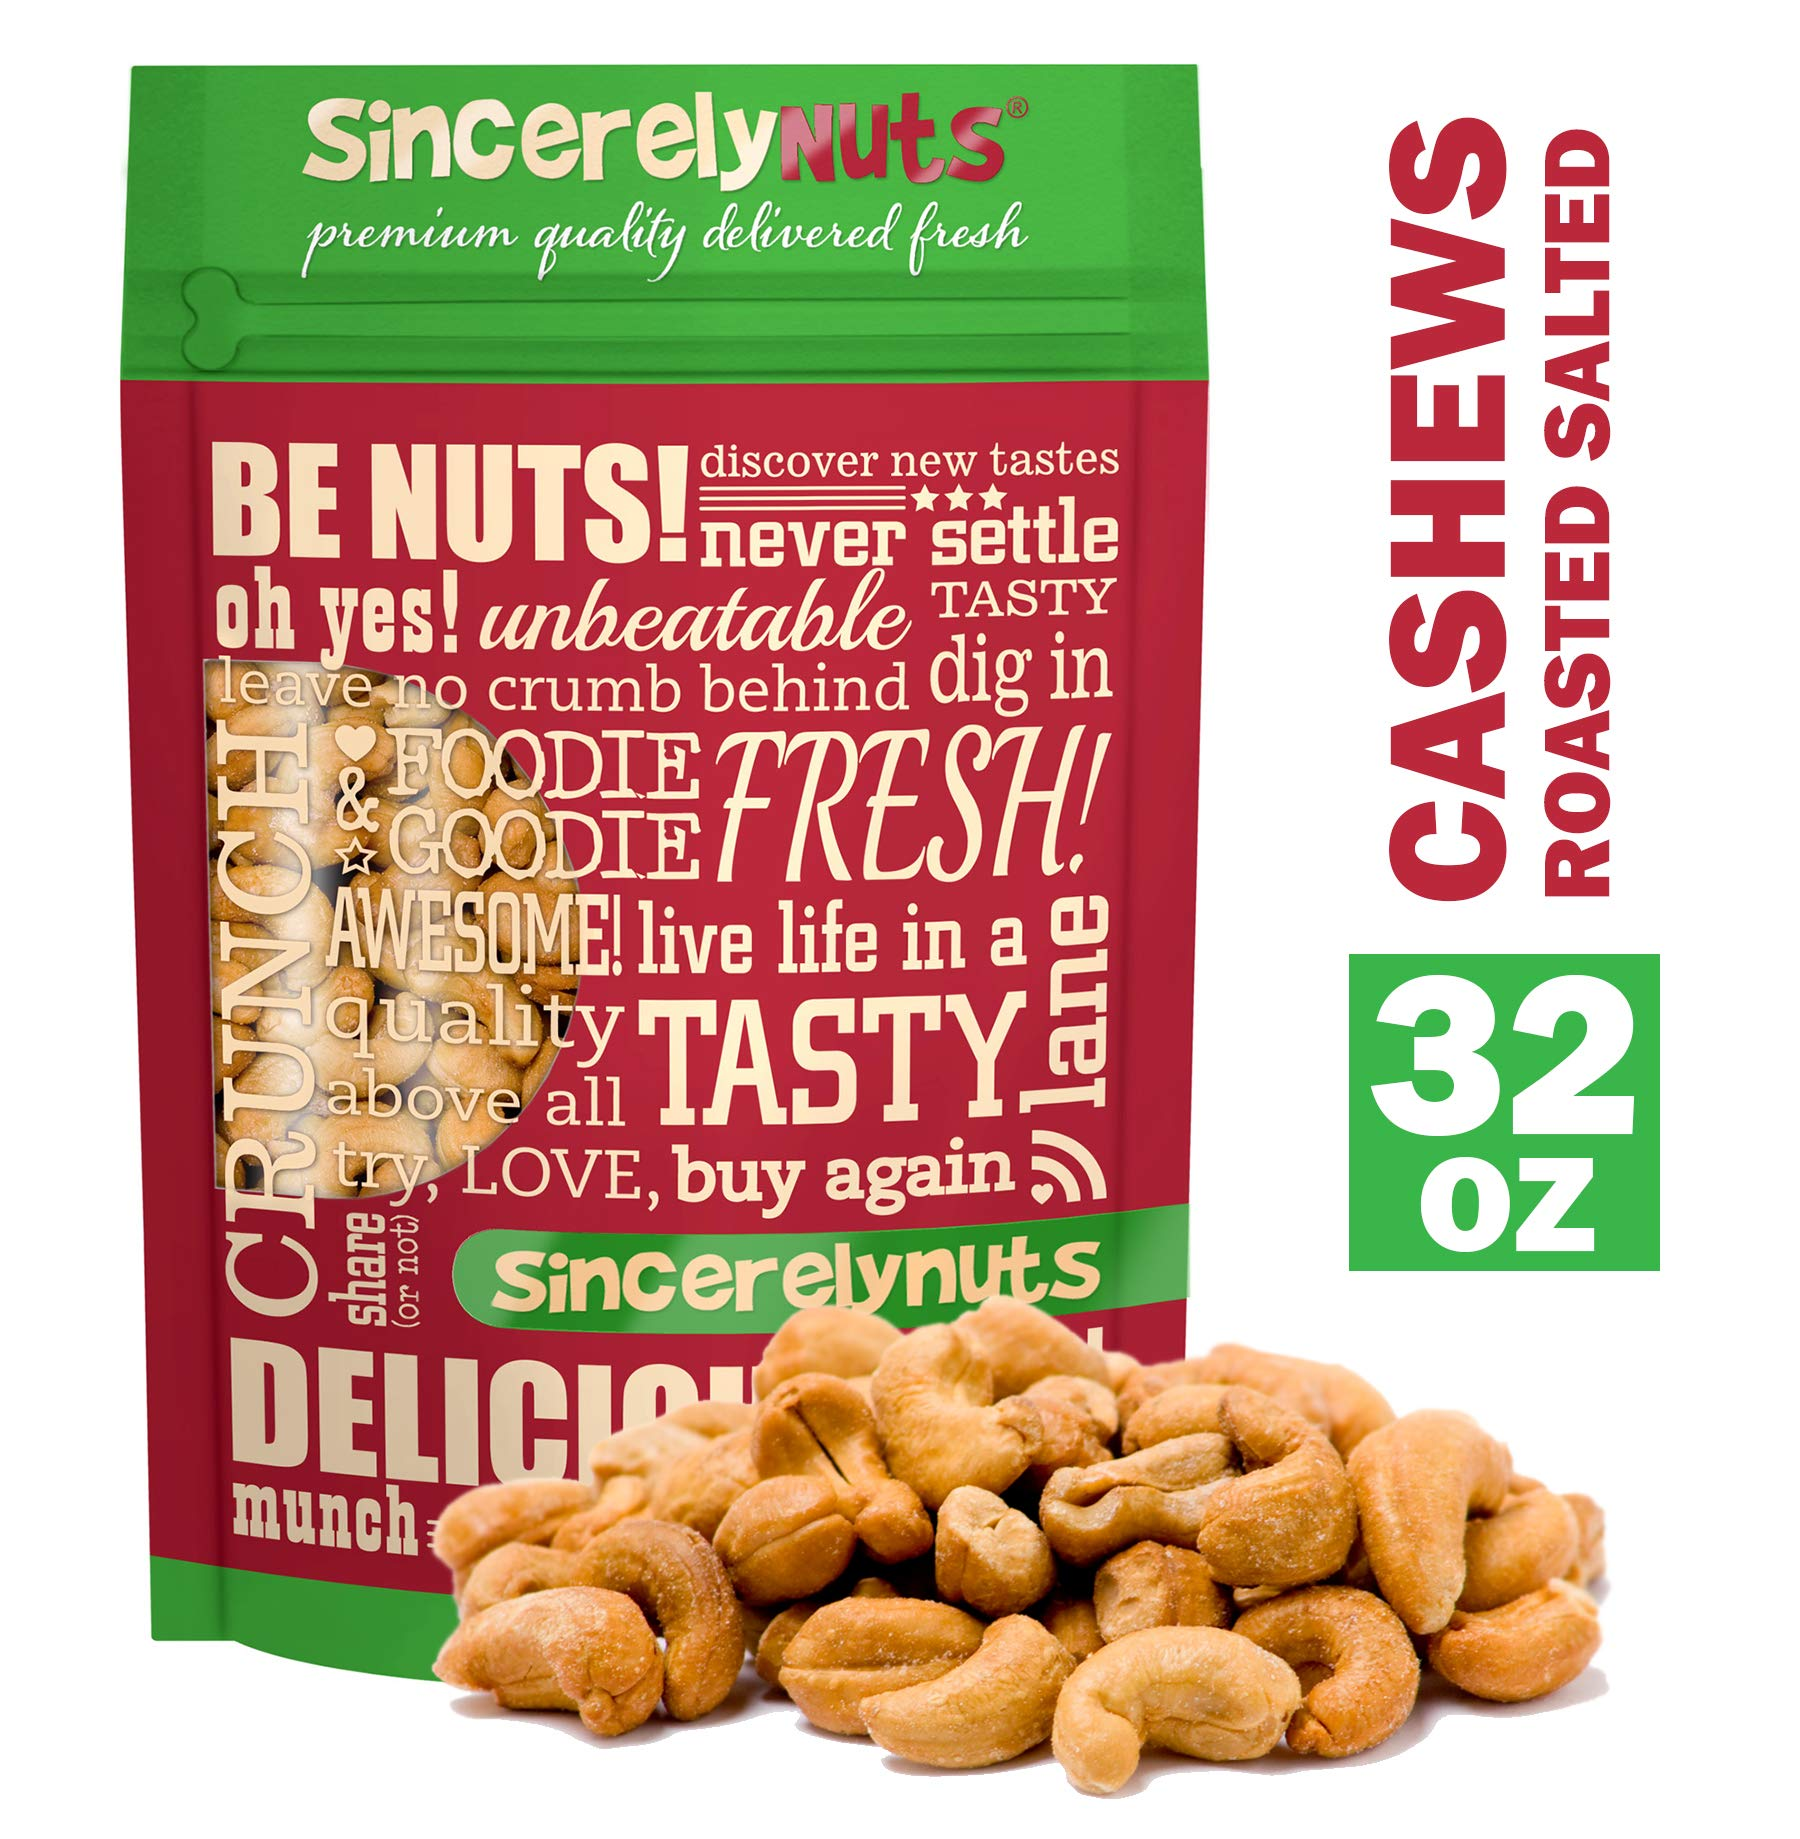 Sincerely Nuts - Whole Cashews Roasted and Salted | Two Lb. Bag | Deluxe Kosher Snack Food | Healthy Source of Protein, Vitamin & Mineral Nutritional Content | Gourmet Quality Vegan Cashew Nut